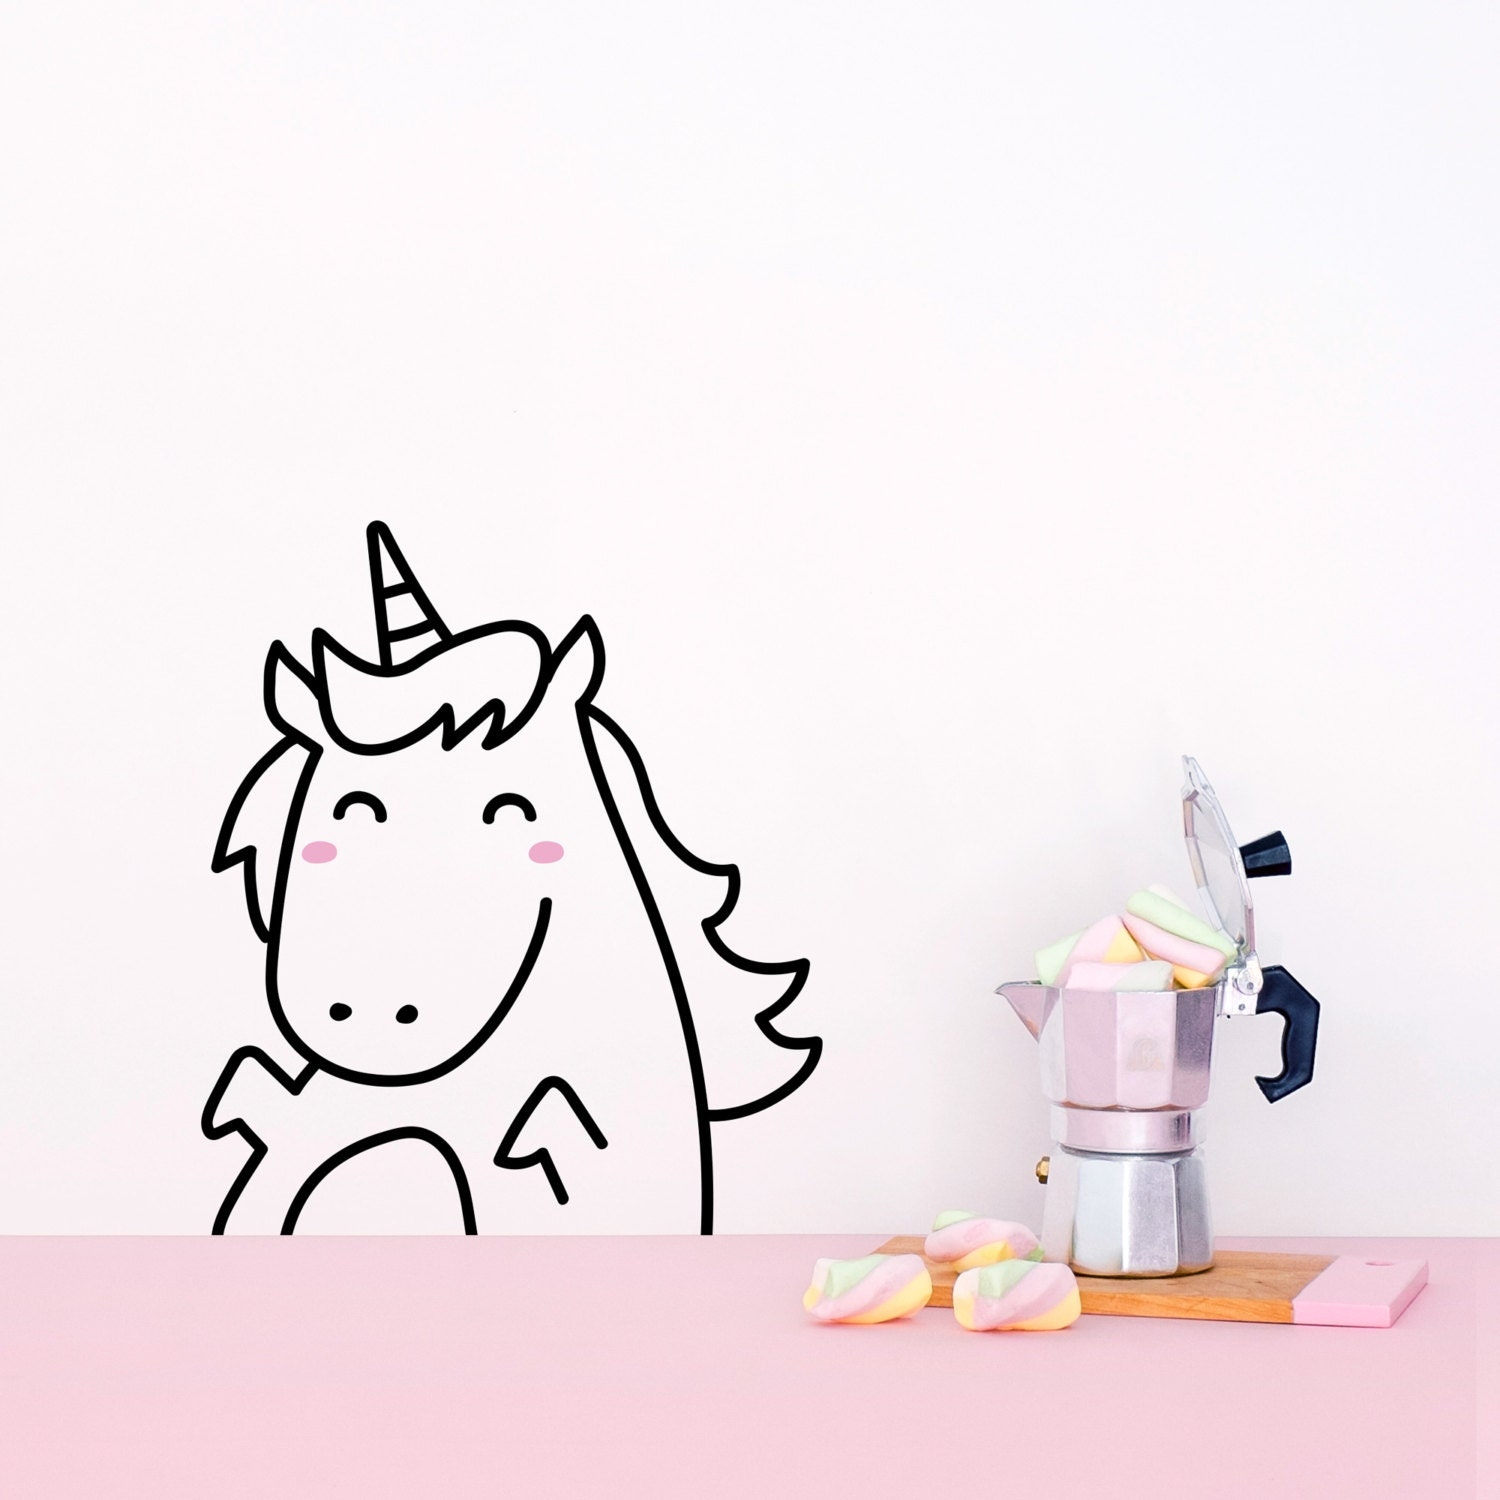 Tiny Lola The Unicorn Door Friend Decal Stickers For Doors